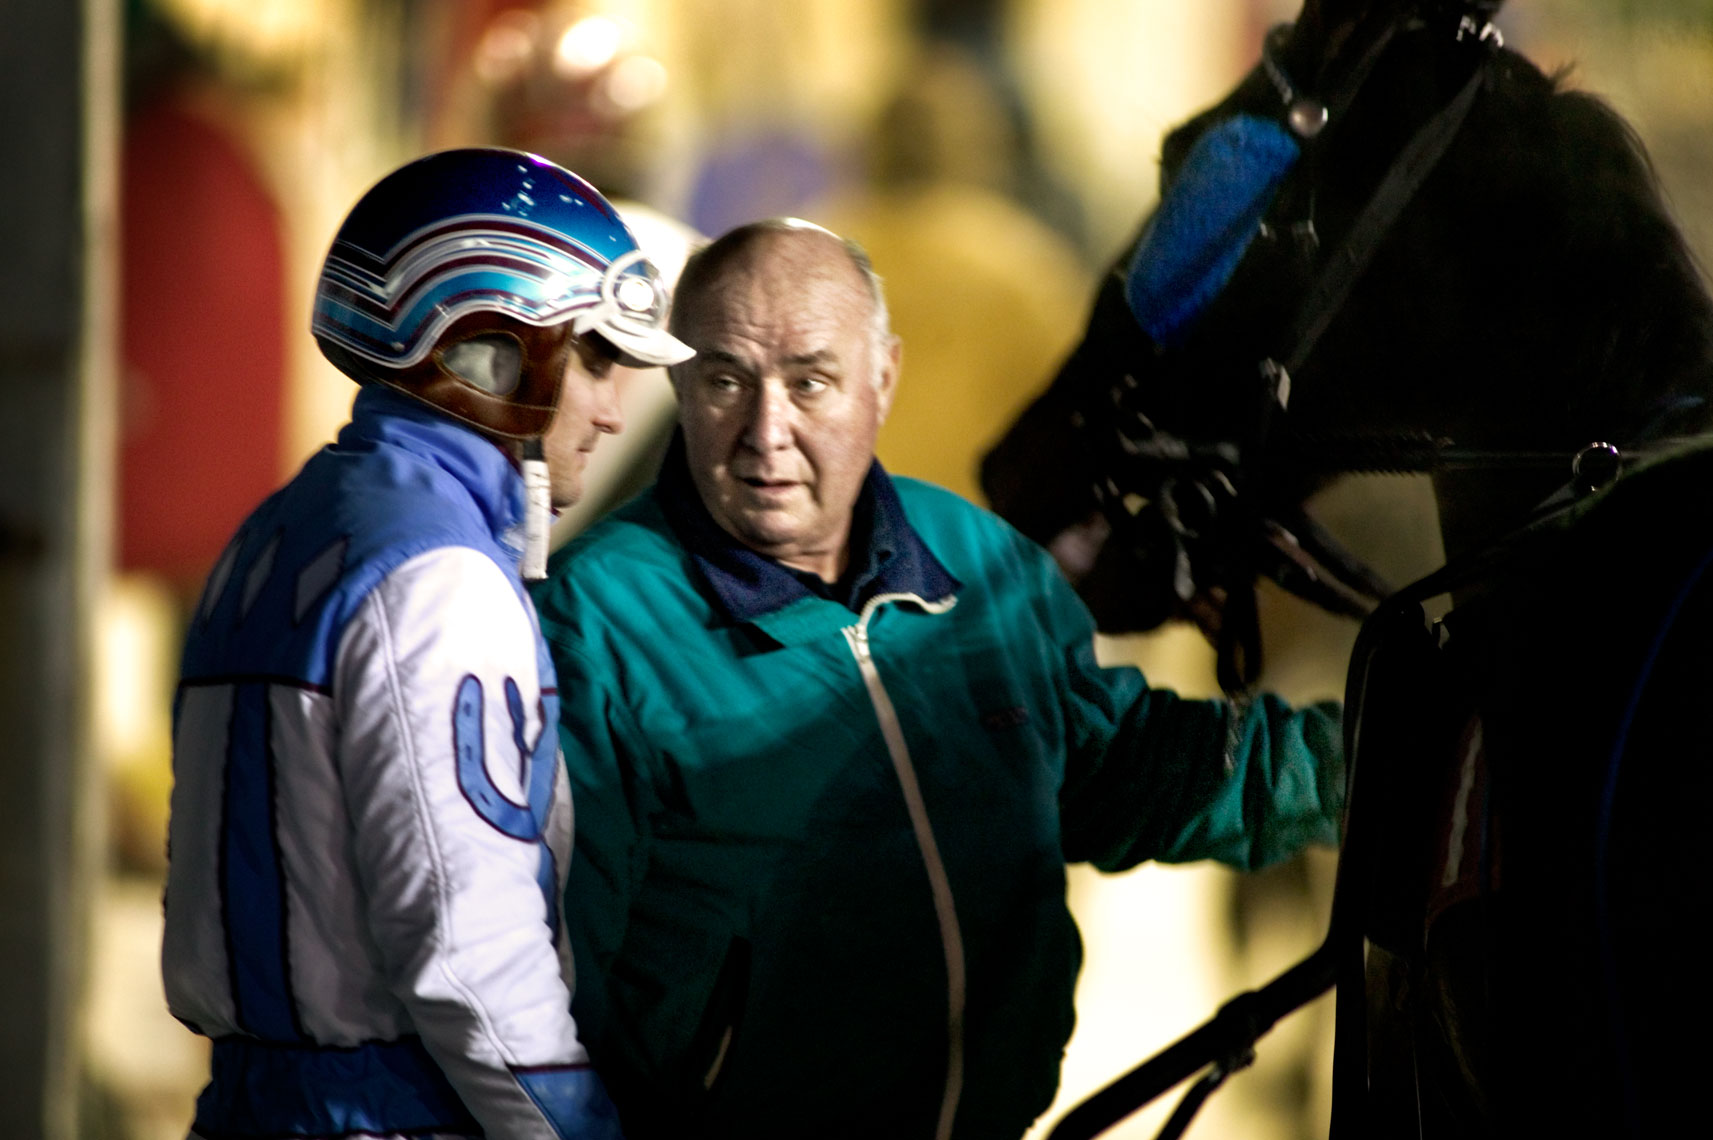 Harness Racing_007| Robert Randall Advertising Photographer, Commercial Photographer, CGI, Portrait, and Lifestyle Photography